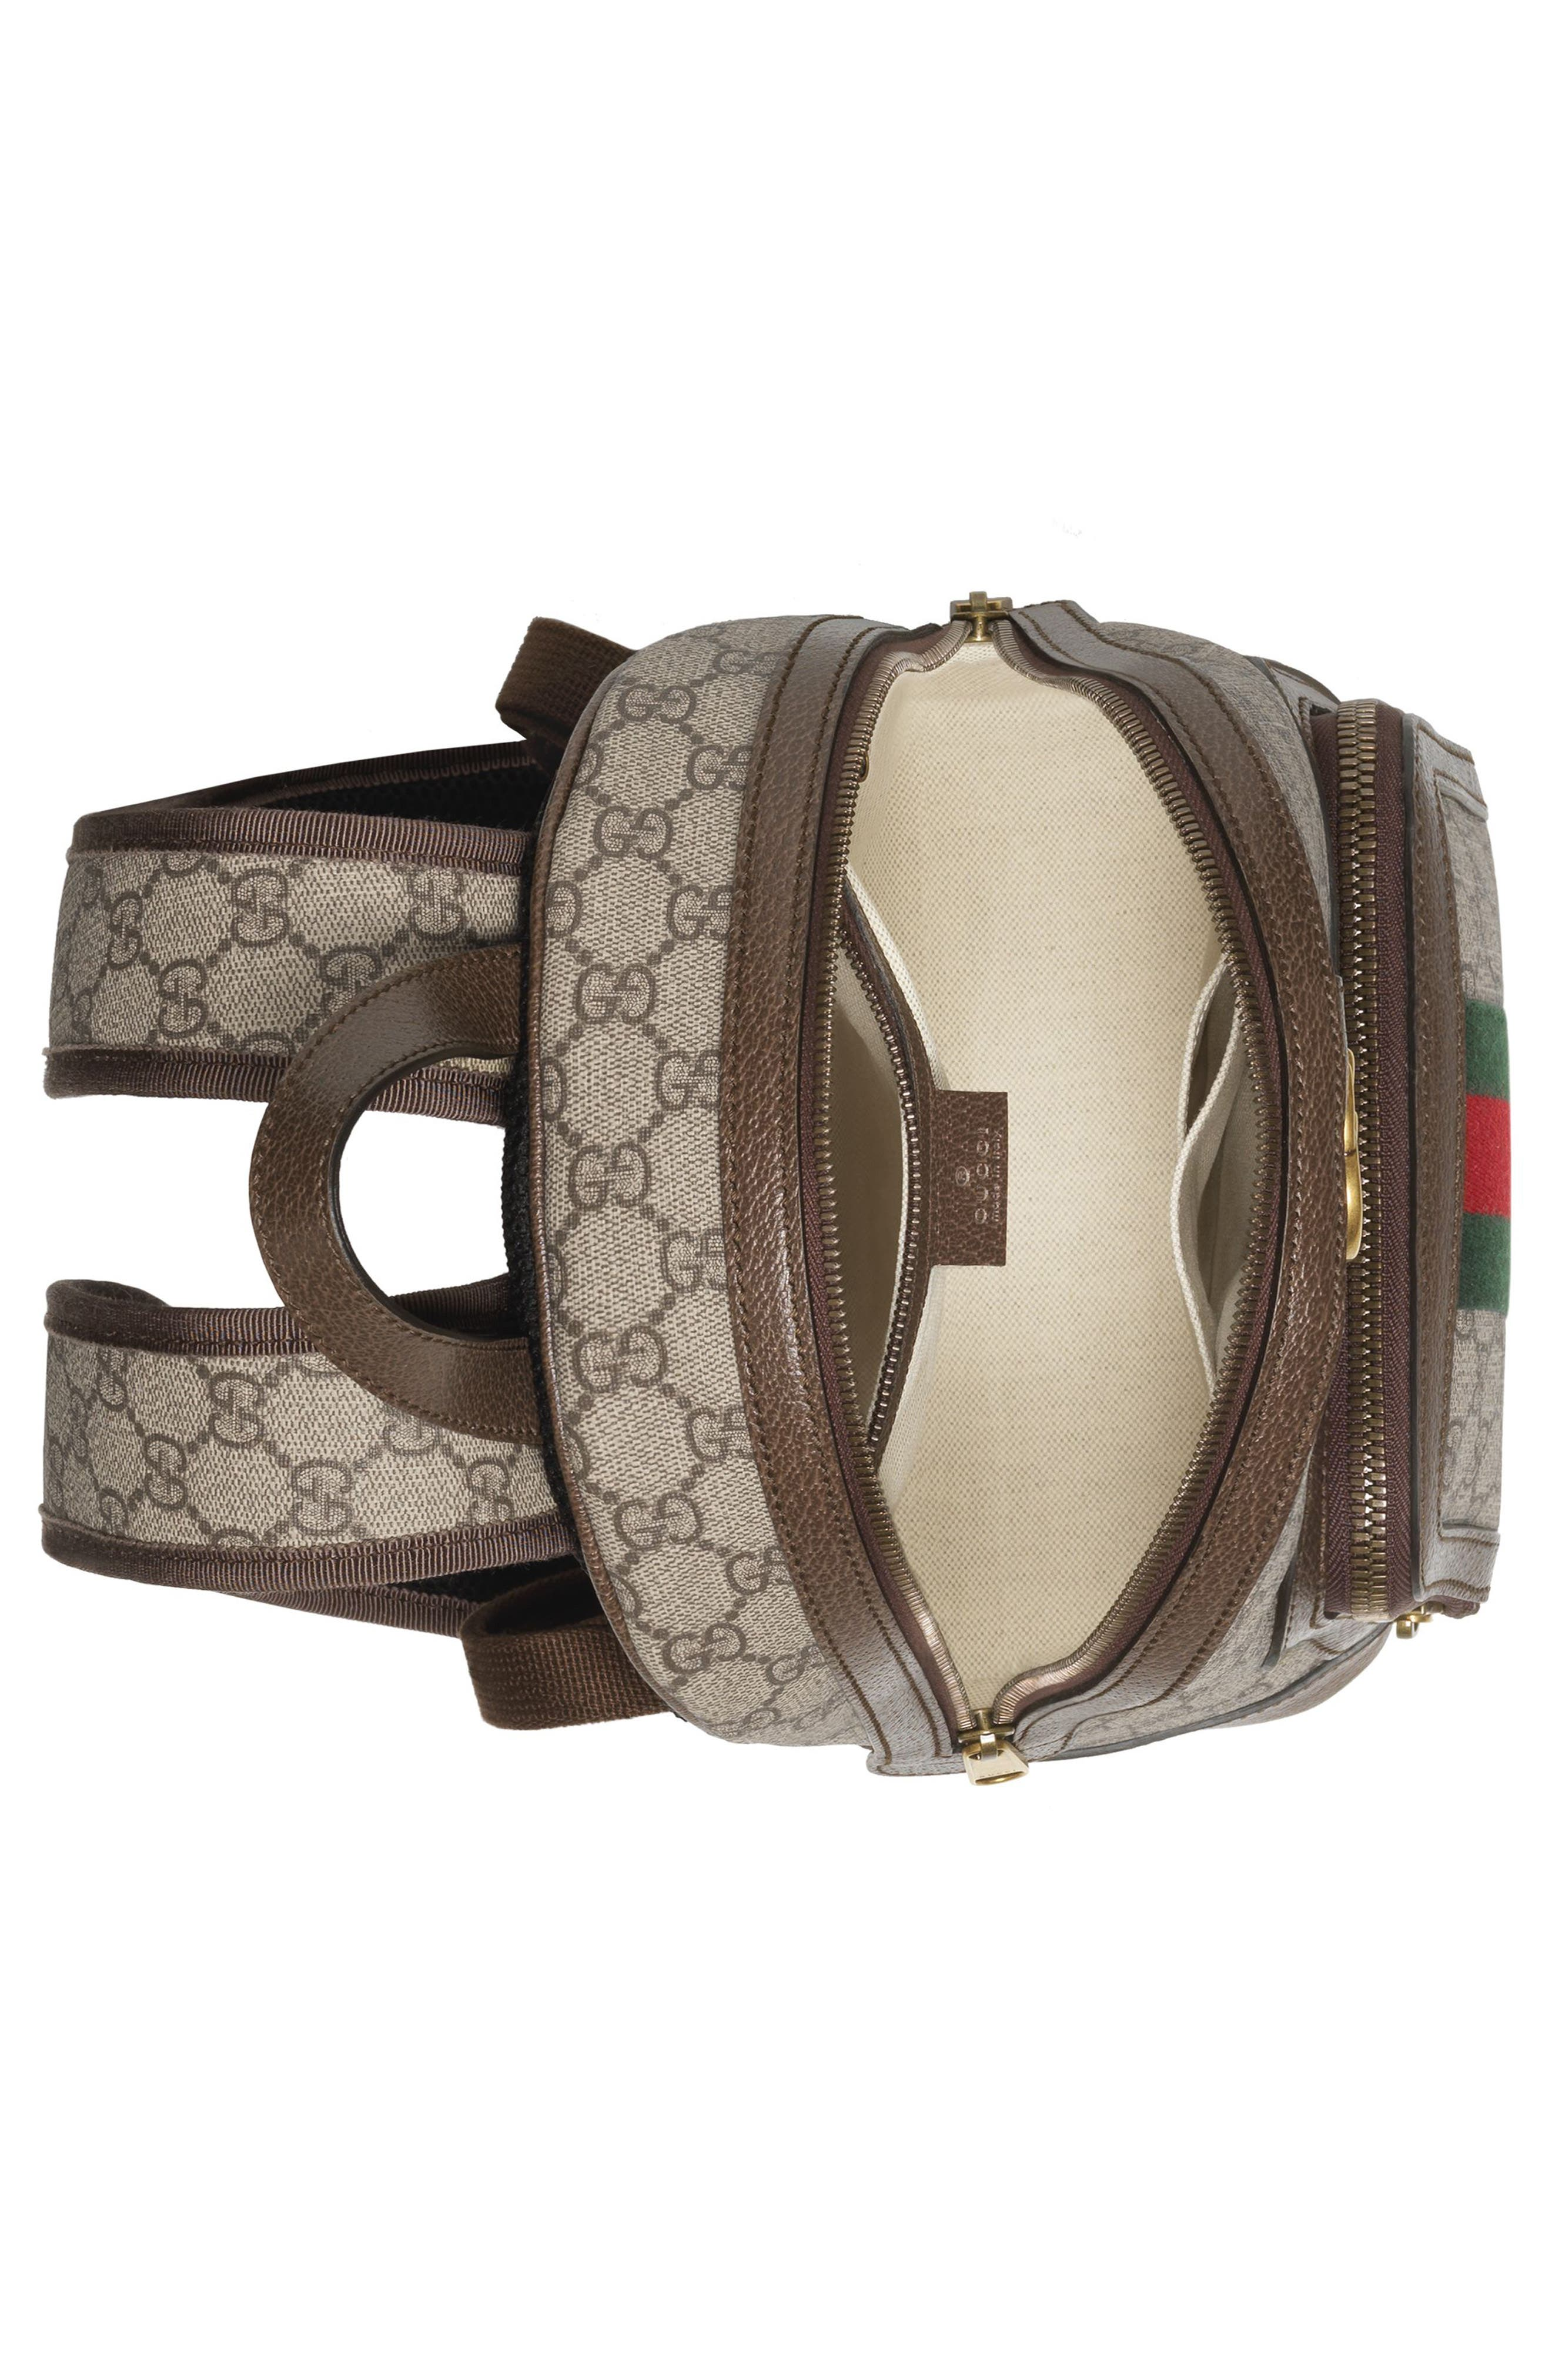 Small Ophidia GG Supreme Canvas Backpack,                             Alternate thumbnail 3, color,                             BEIGE EBONY/ NEW ACERO